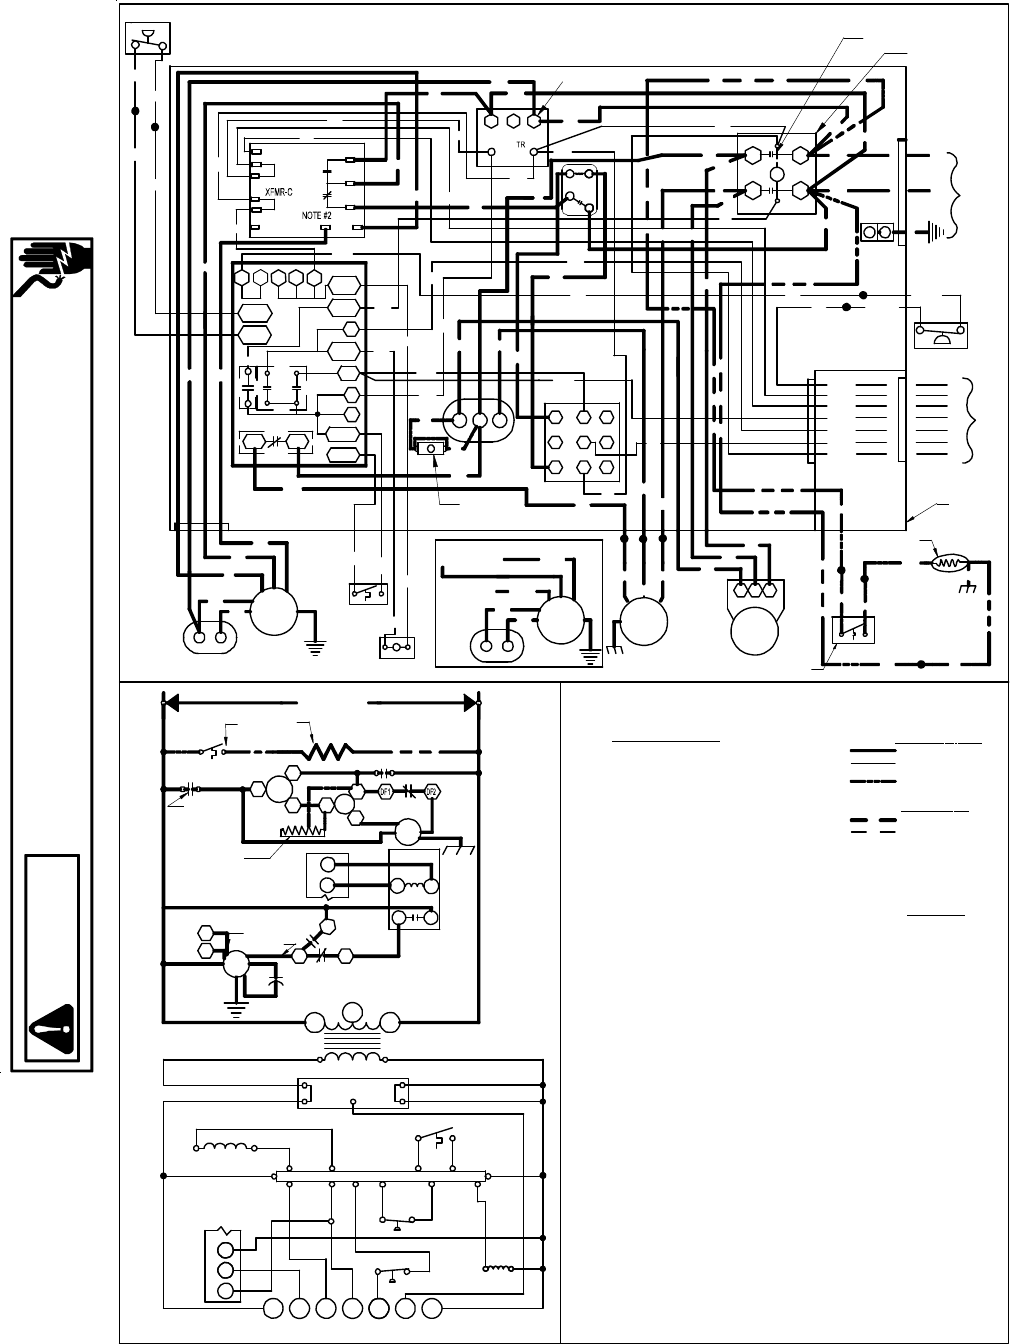 Goodman Heat Pump Schematic Diagram : 35 Wiring Diagram